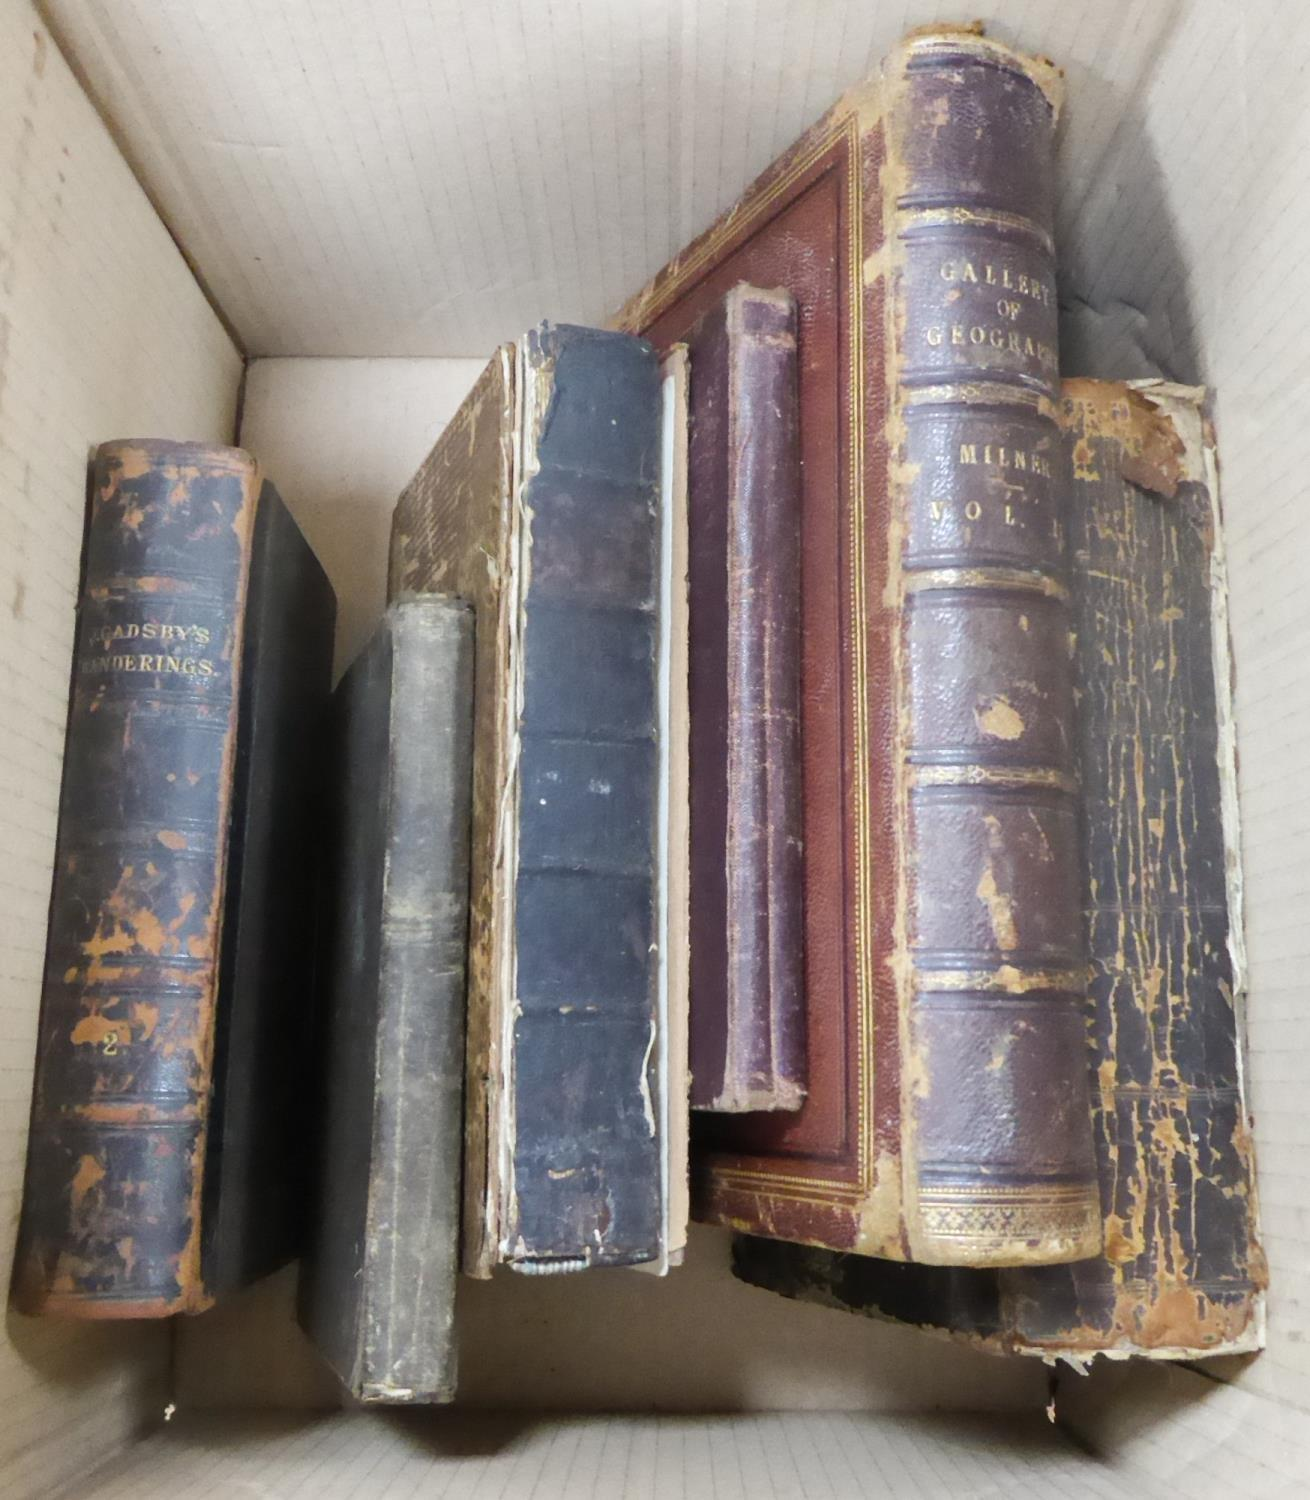 Lot 138 - JOHN GADSBY - MY WANDERINGS BEING TRAVELS IN THE EAST Gadsby Bouverie Street 1885 Volume 11 only.